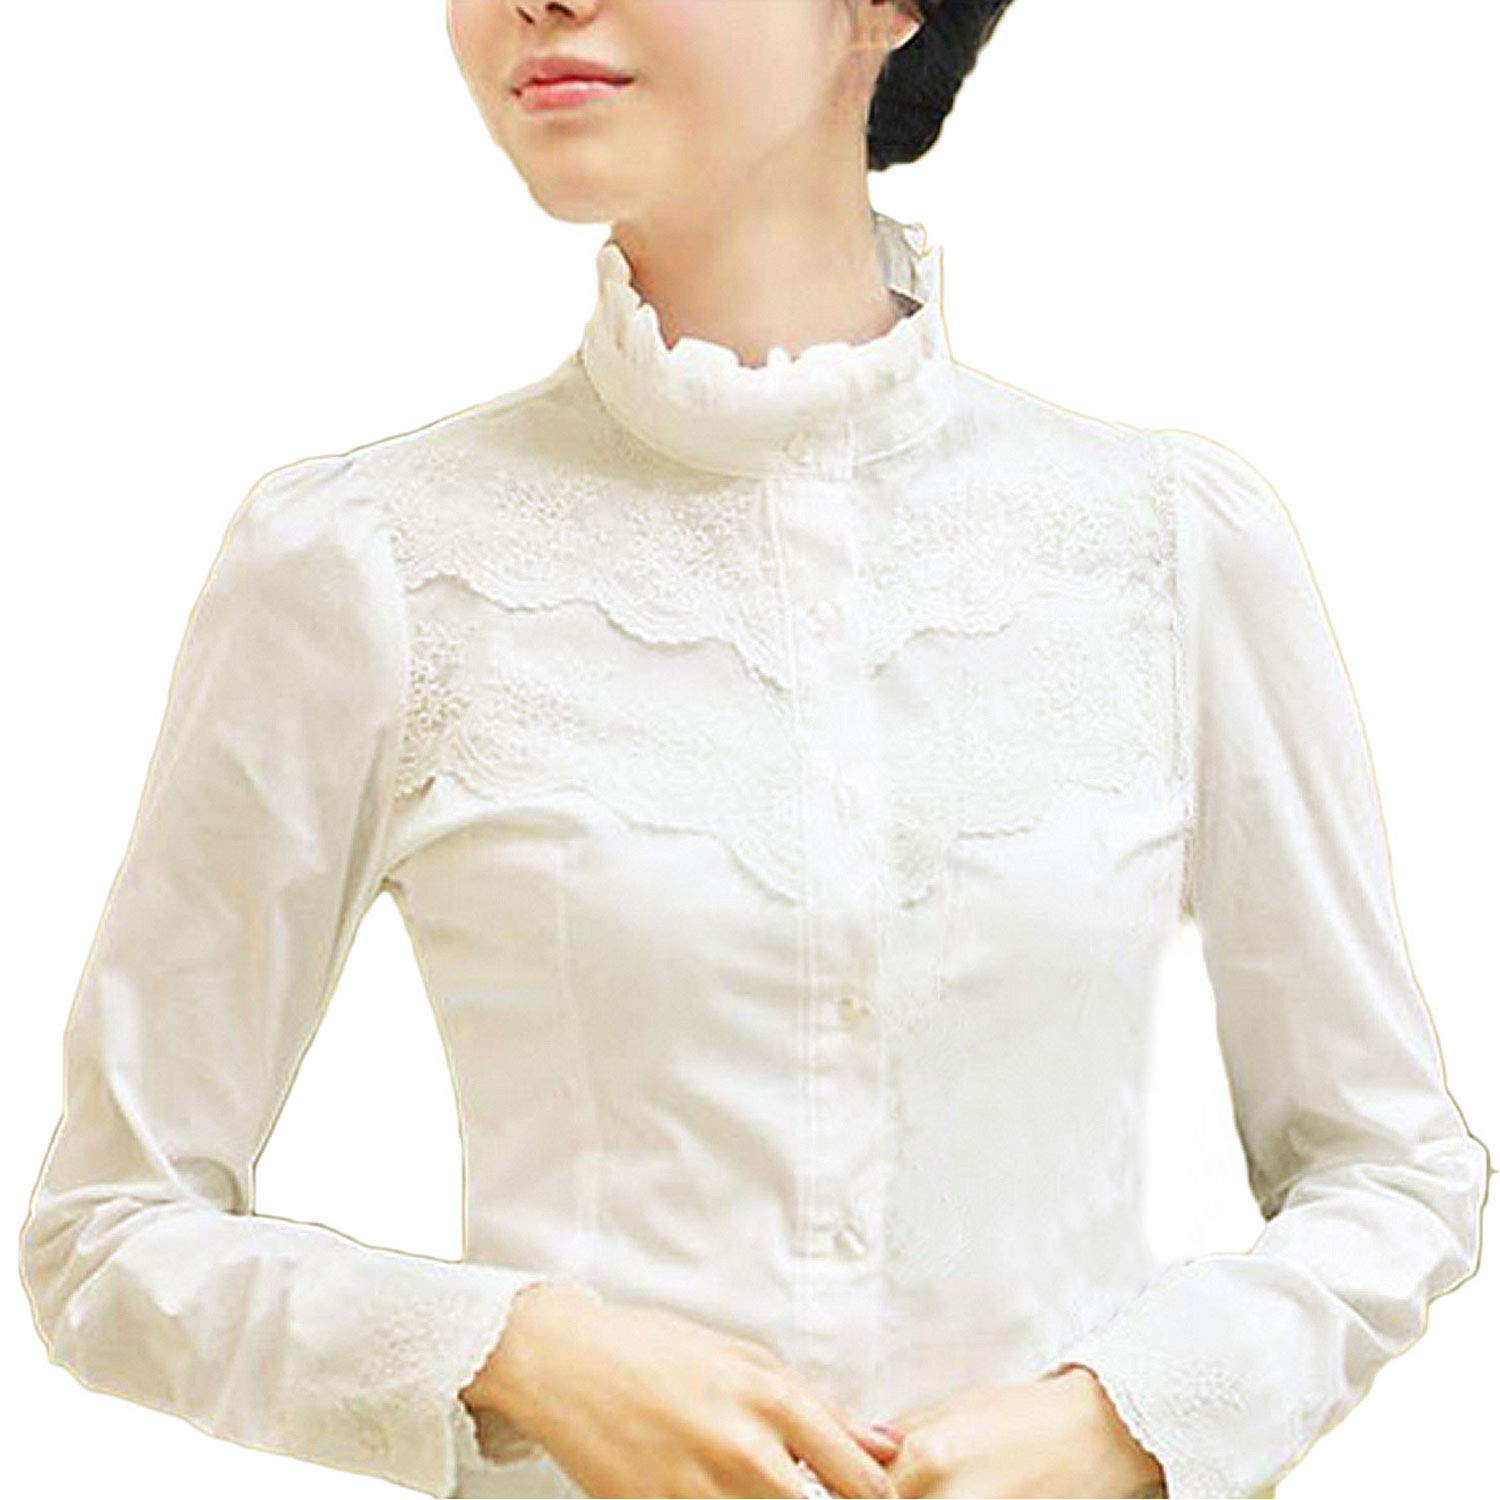 1900 -1910s Edwardian Fashion, Clothing & Costumes Nonbrand Winter Office Long Sleeve Shirt Lace Top Womens Vintage Blouse Ladies Victorian Tops £15.42 AT vintagedancer.com